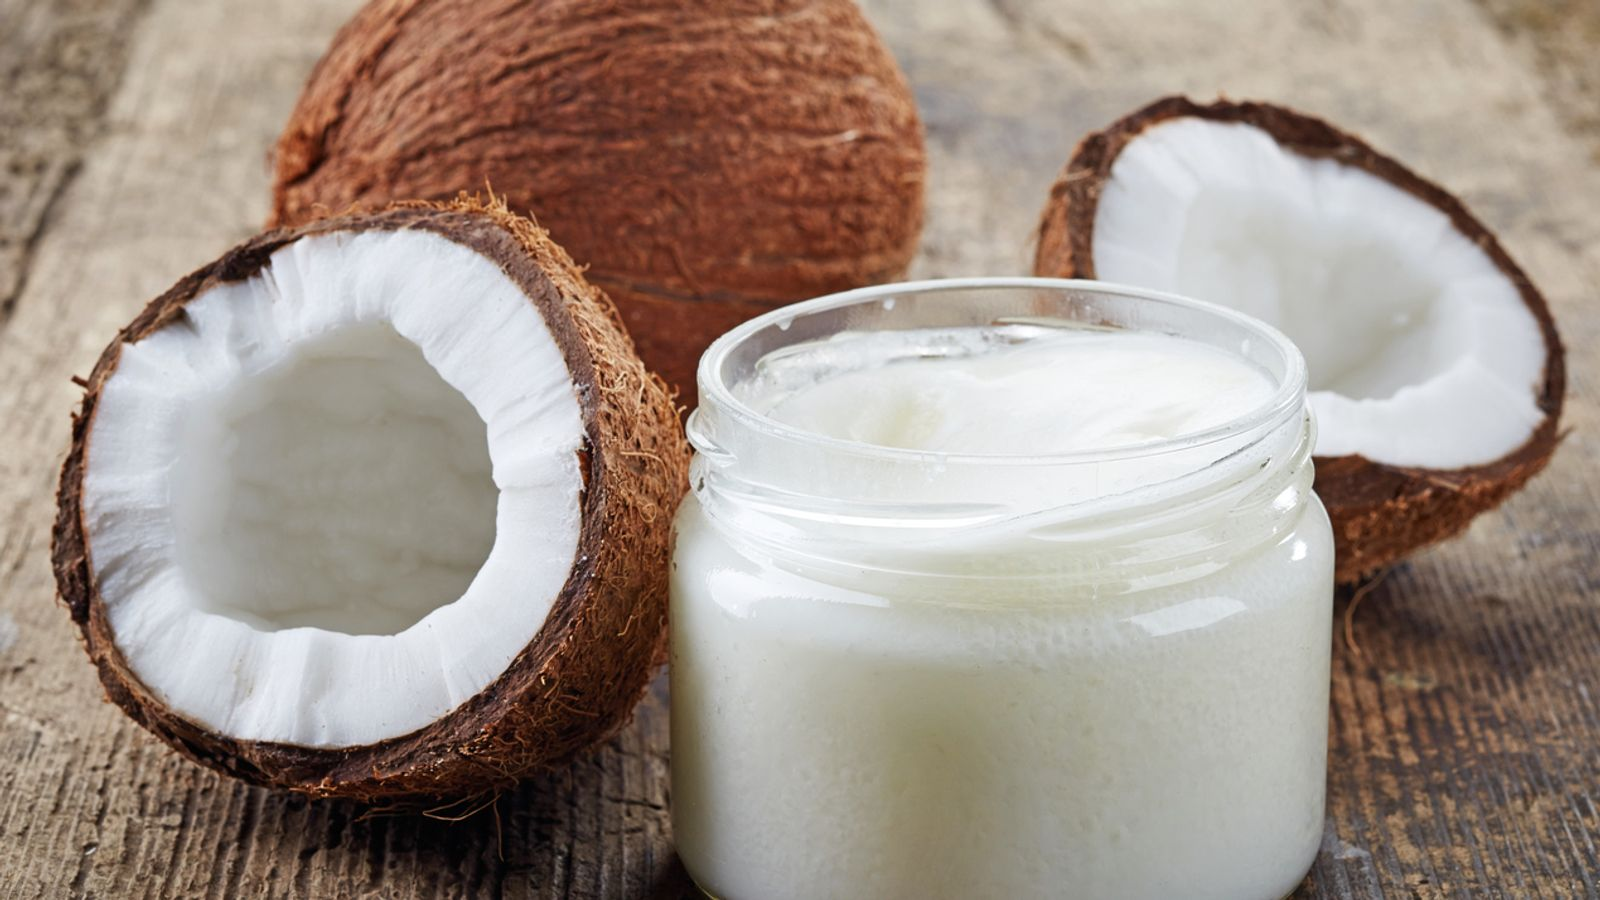 Coconut oil 'pure poison' says Harvard professor